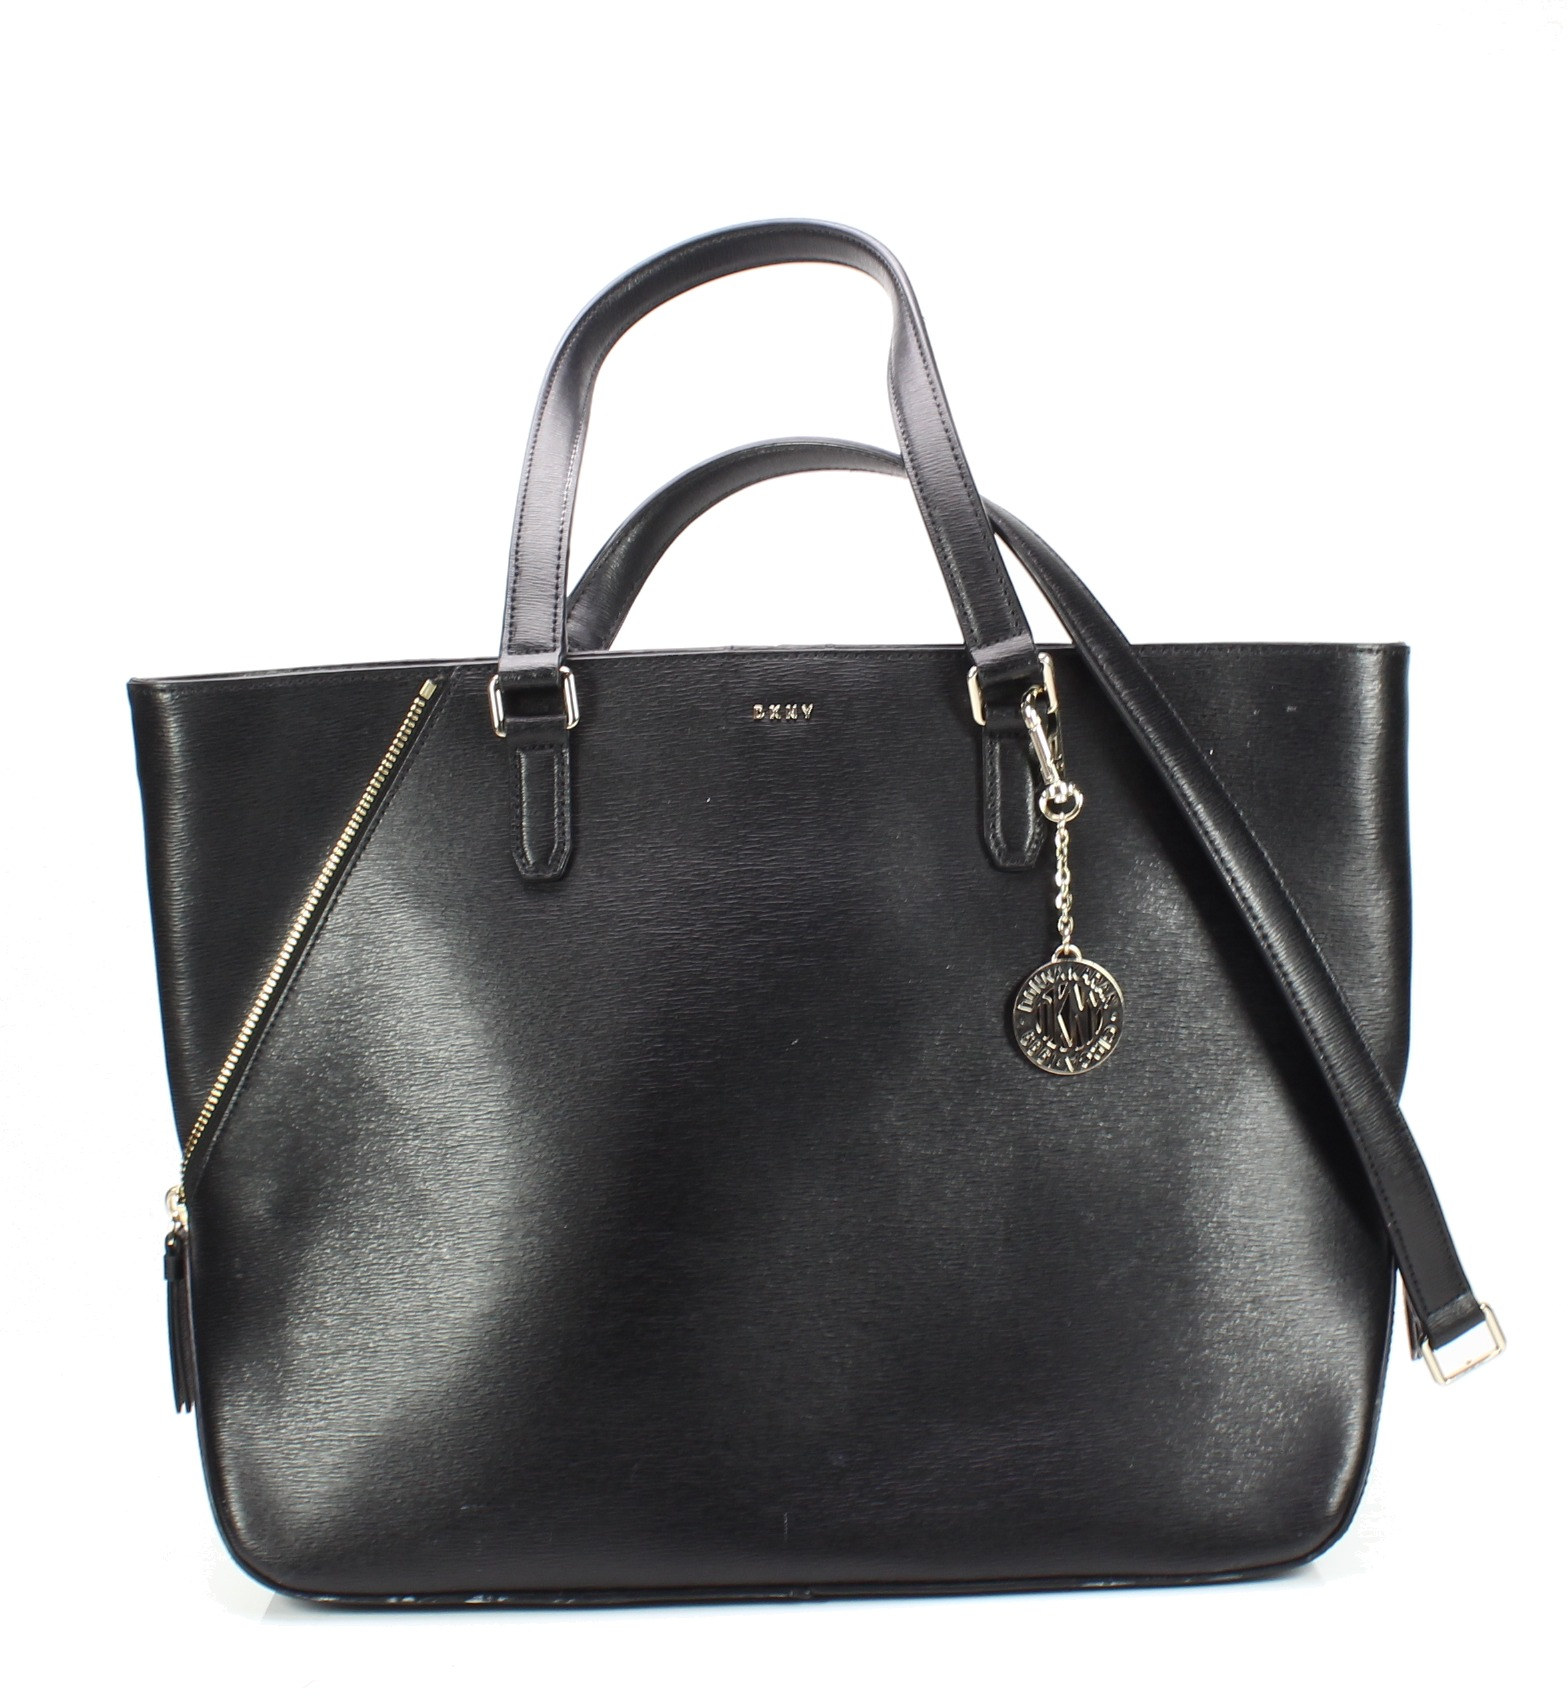 Details about DKNY Black Gold Bryant Top-Zip Textured Leather Large Tote Bag   268-  047 f5456e61994c4